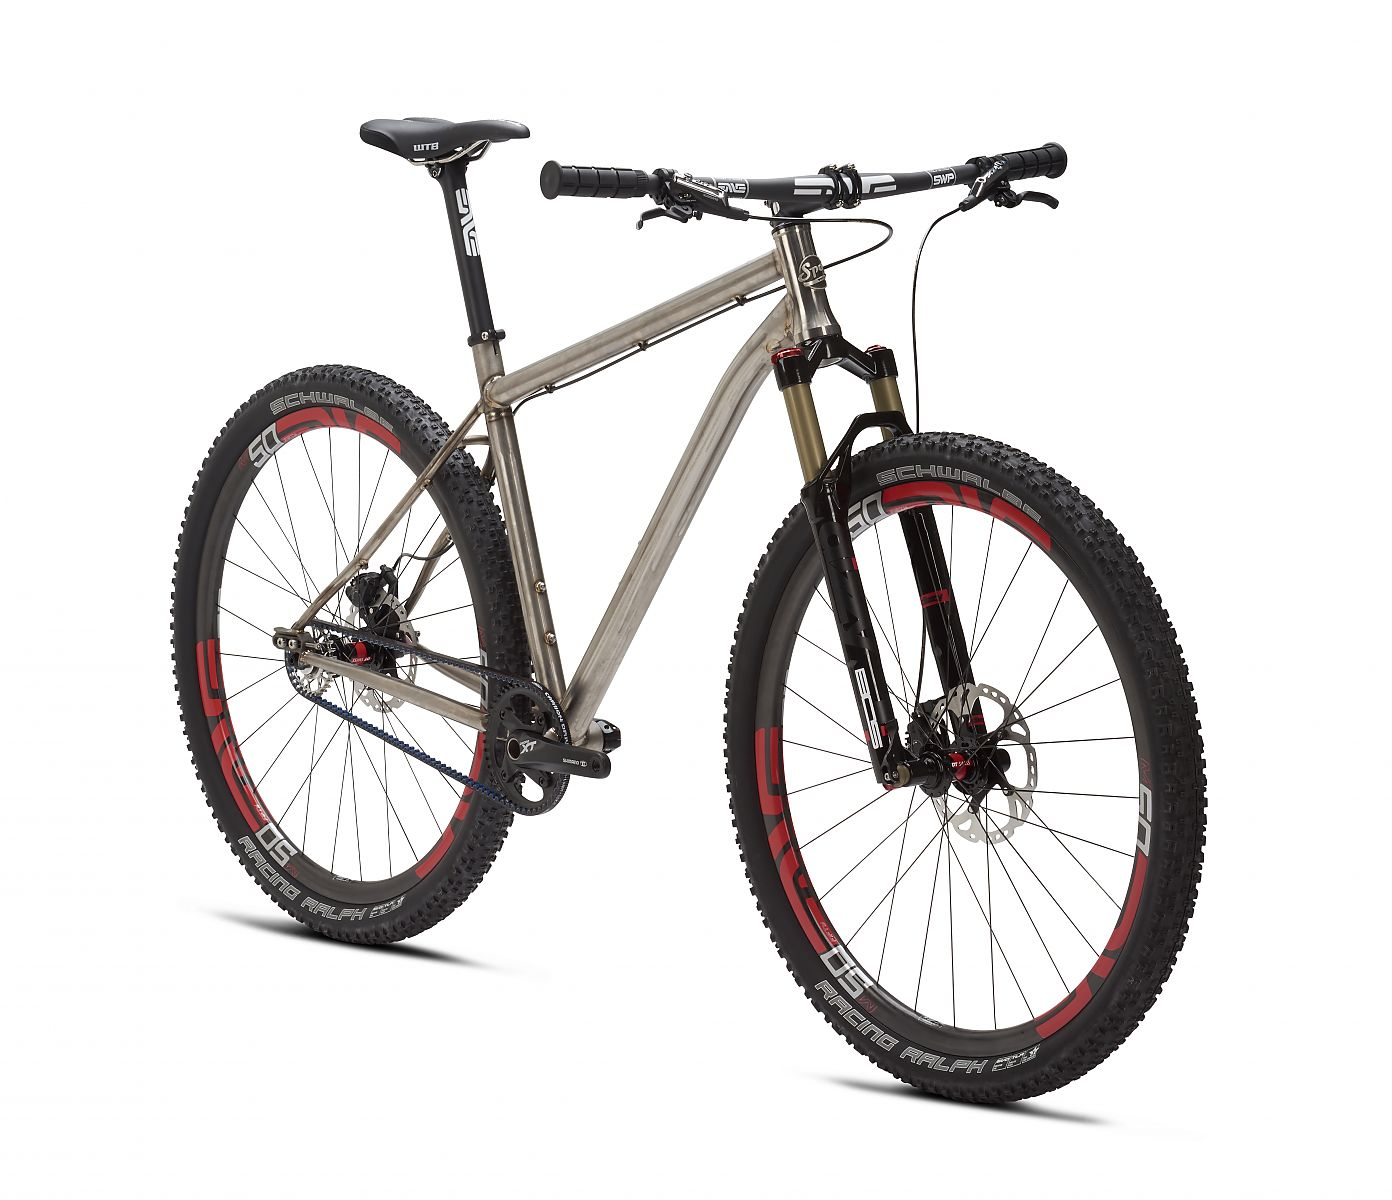 News From Spot Brand New Bike New Engineer New Reps Bicycle